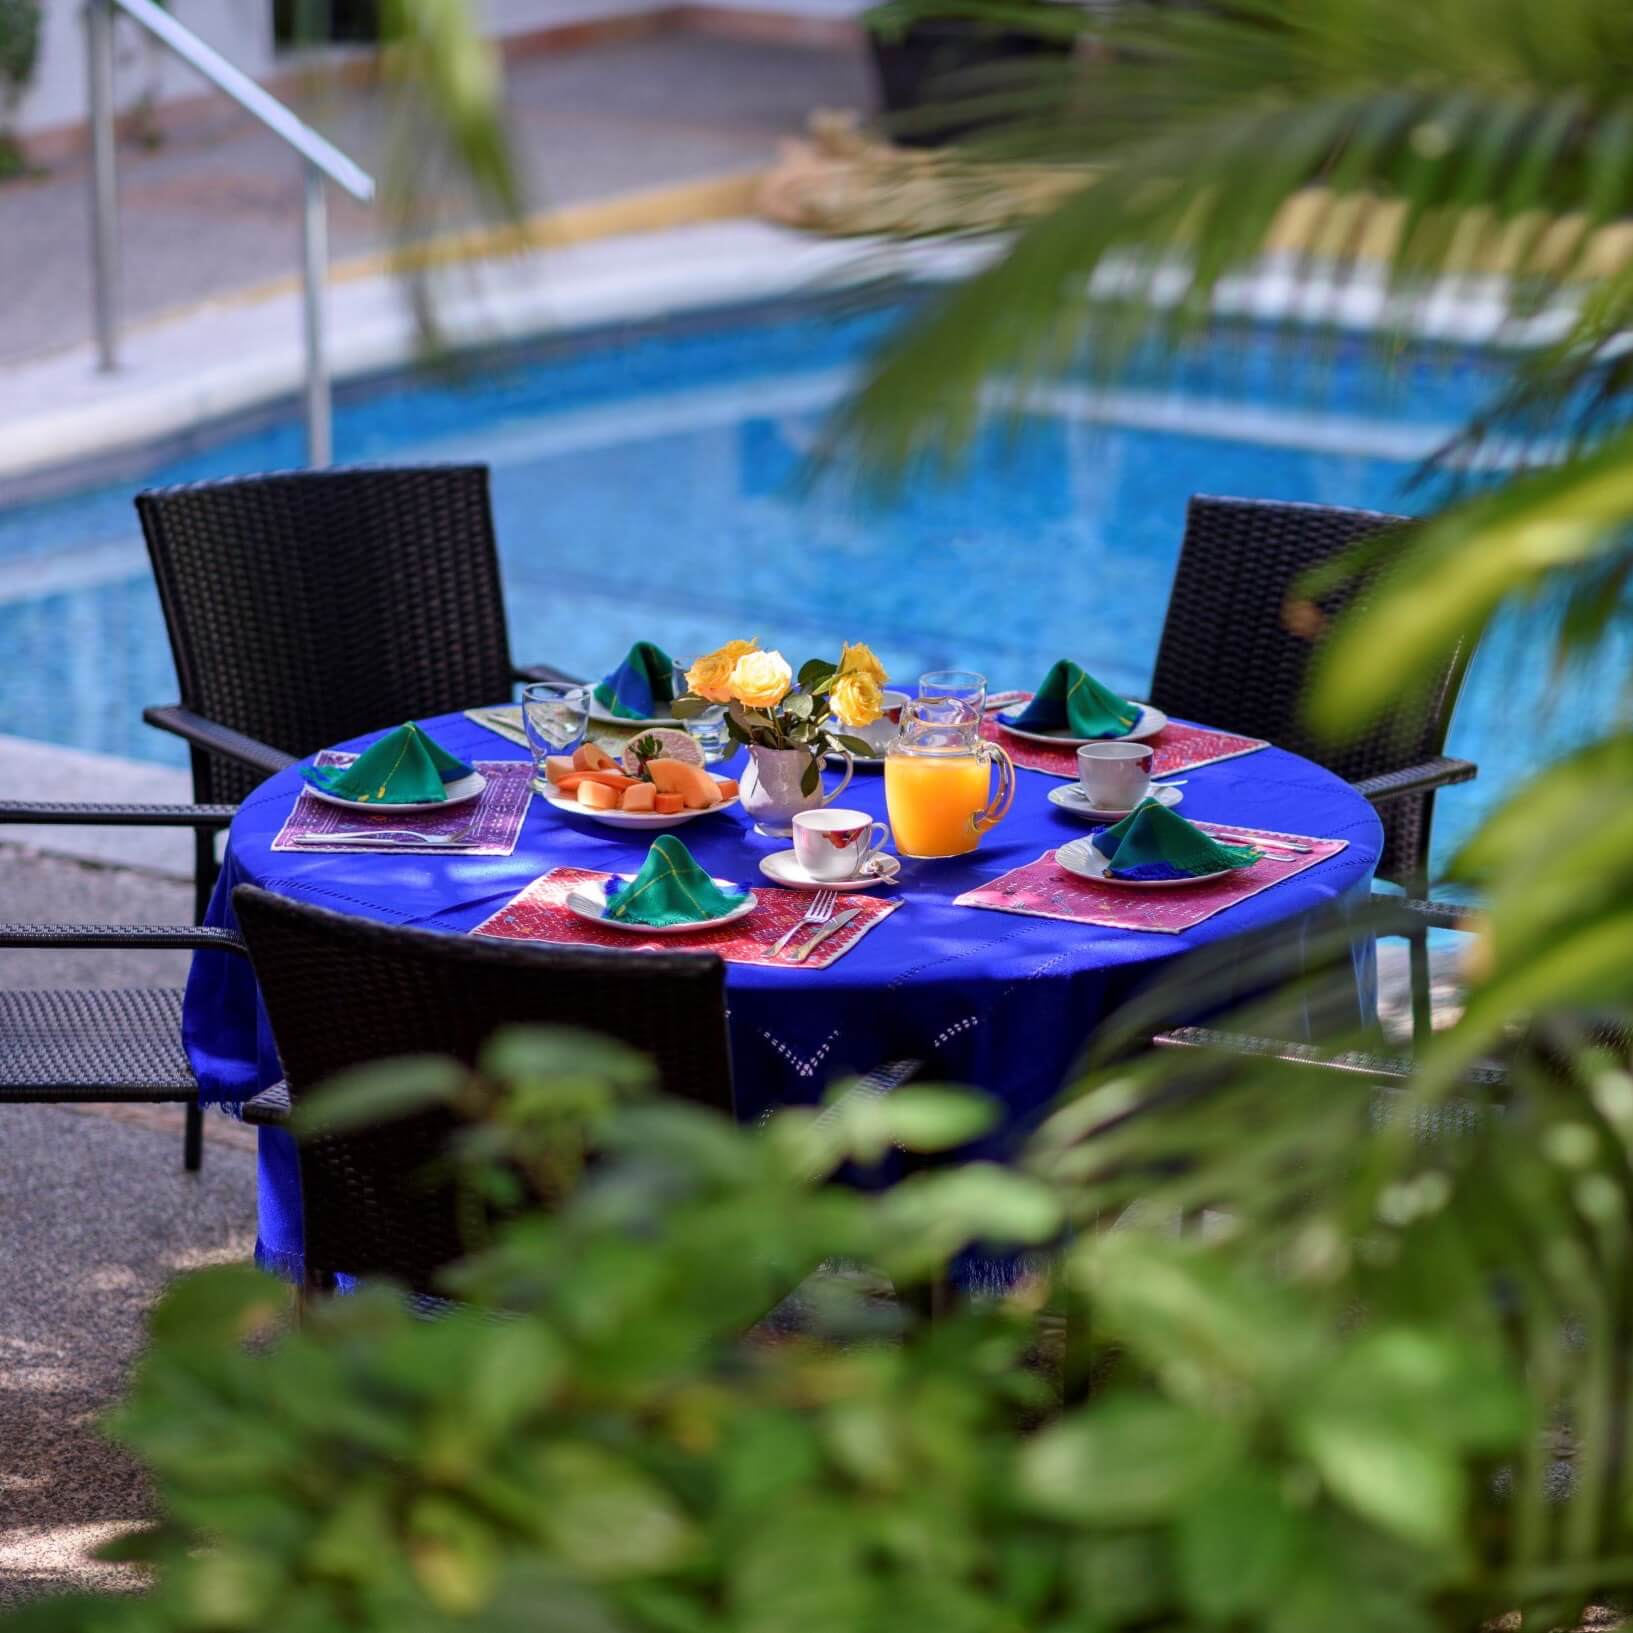 A breakfast table set by the poolside